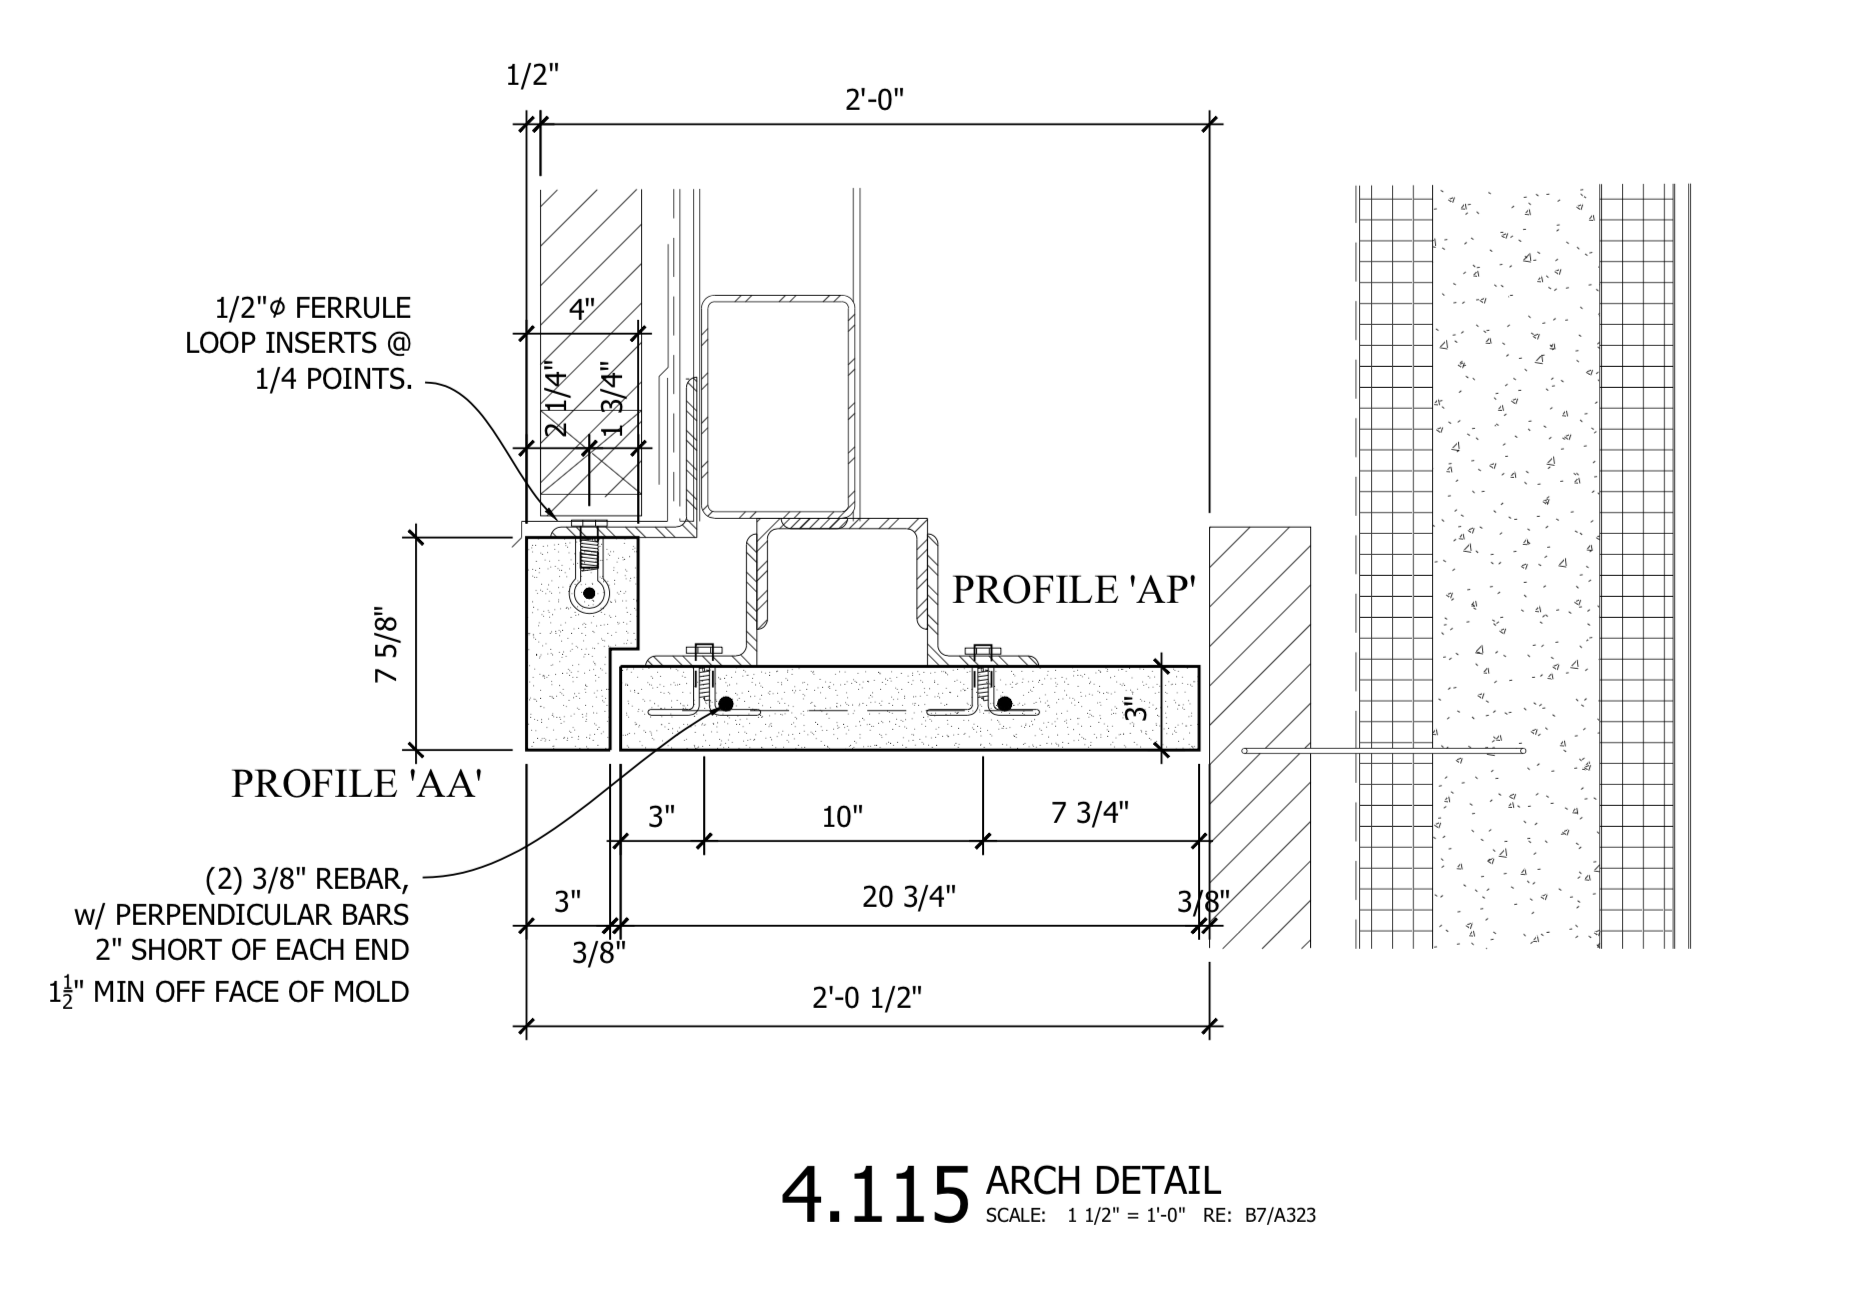 Section 4.115 - Connection Details for Suspended Soffit of Archway